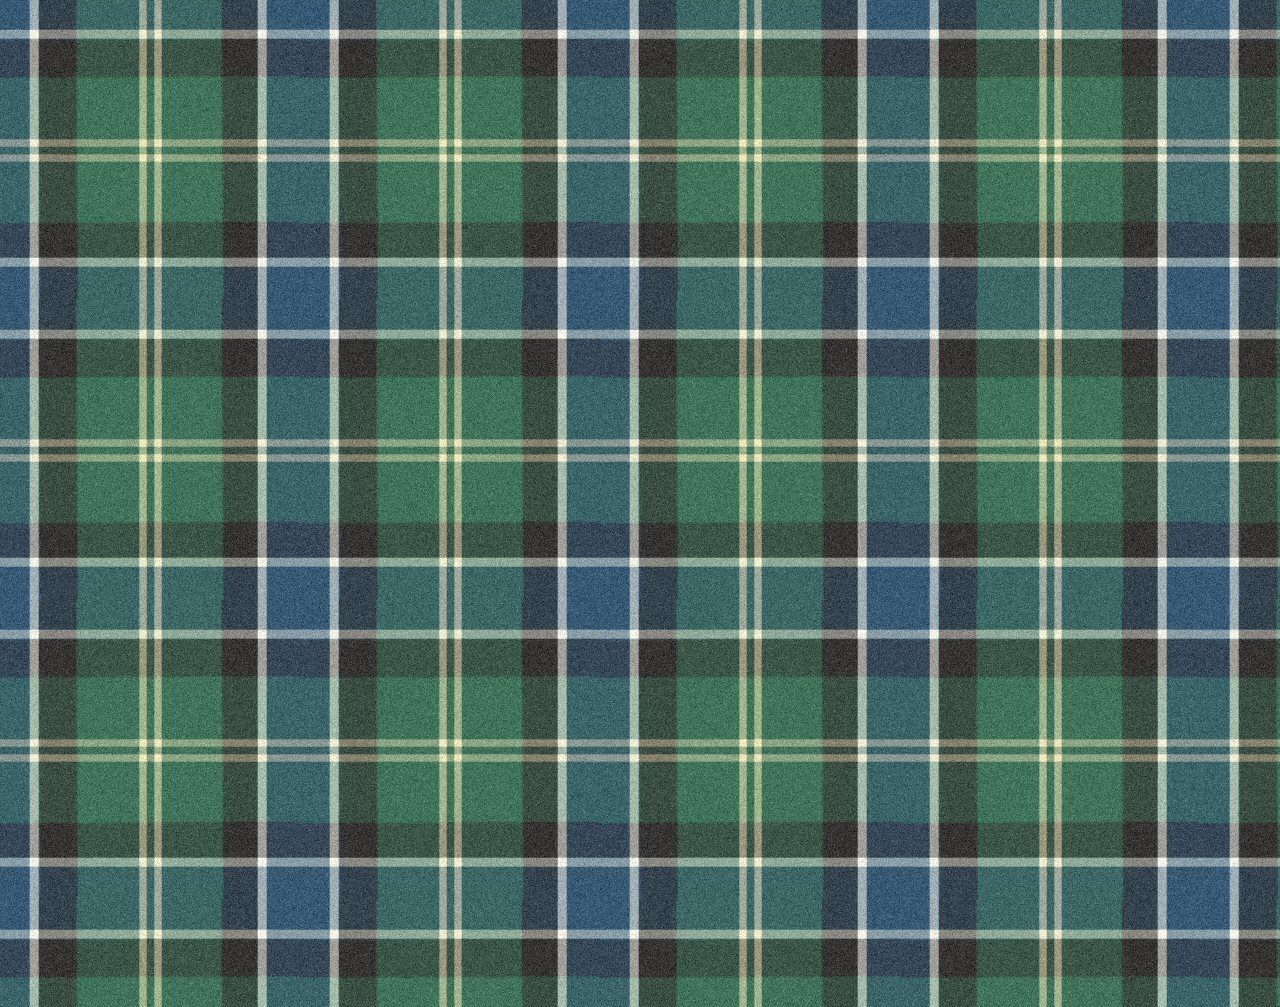 scottish plaid wallpaper wallpapersafari. Black Bedroom Furniture Sets. Home Design Ideas